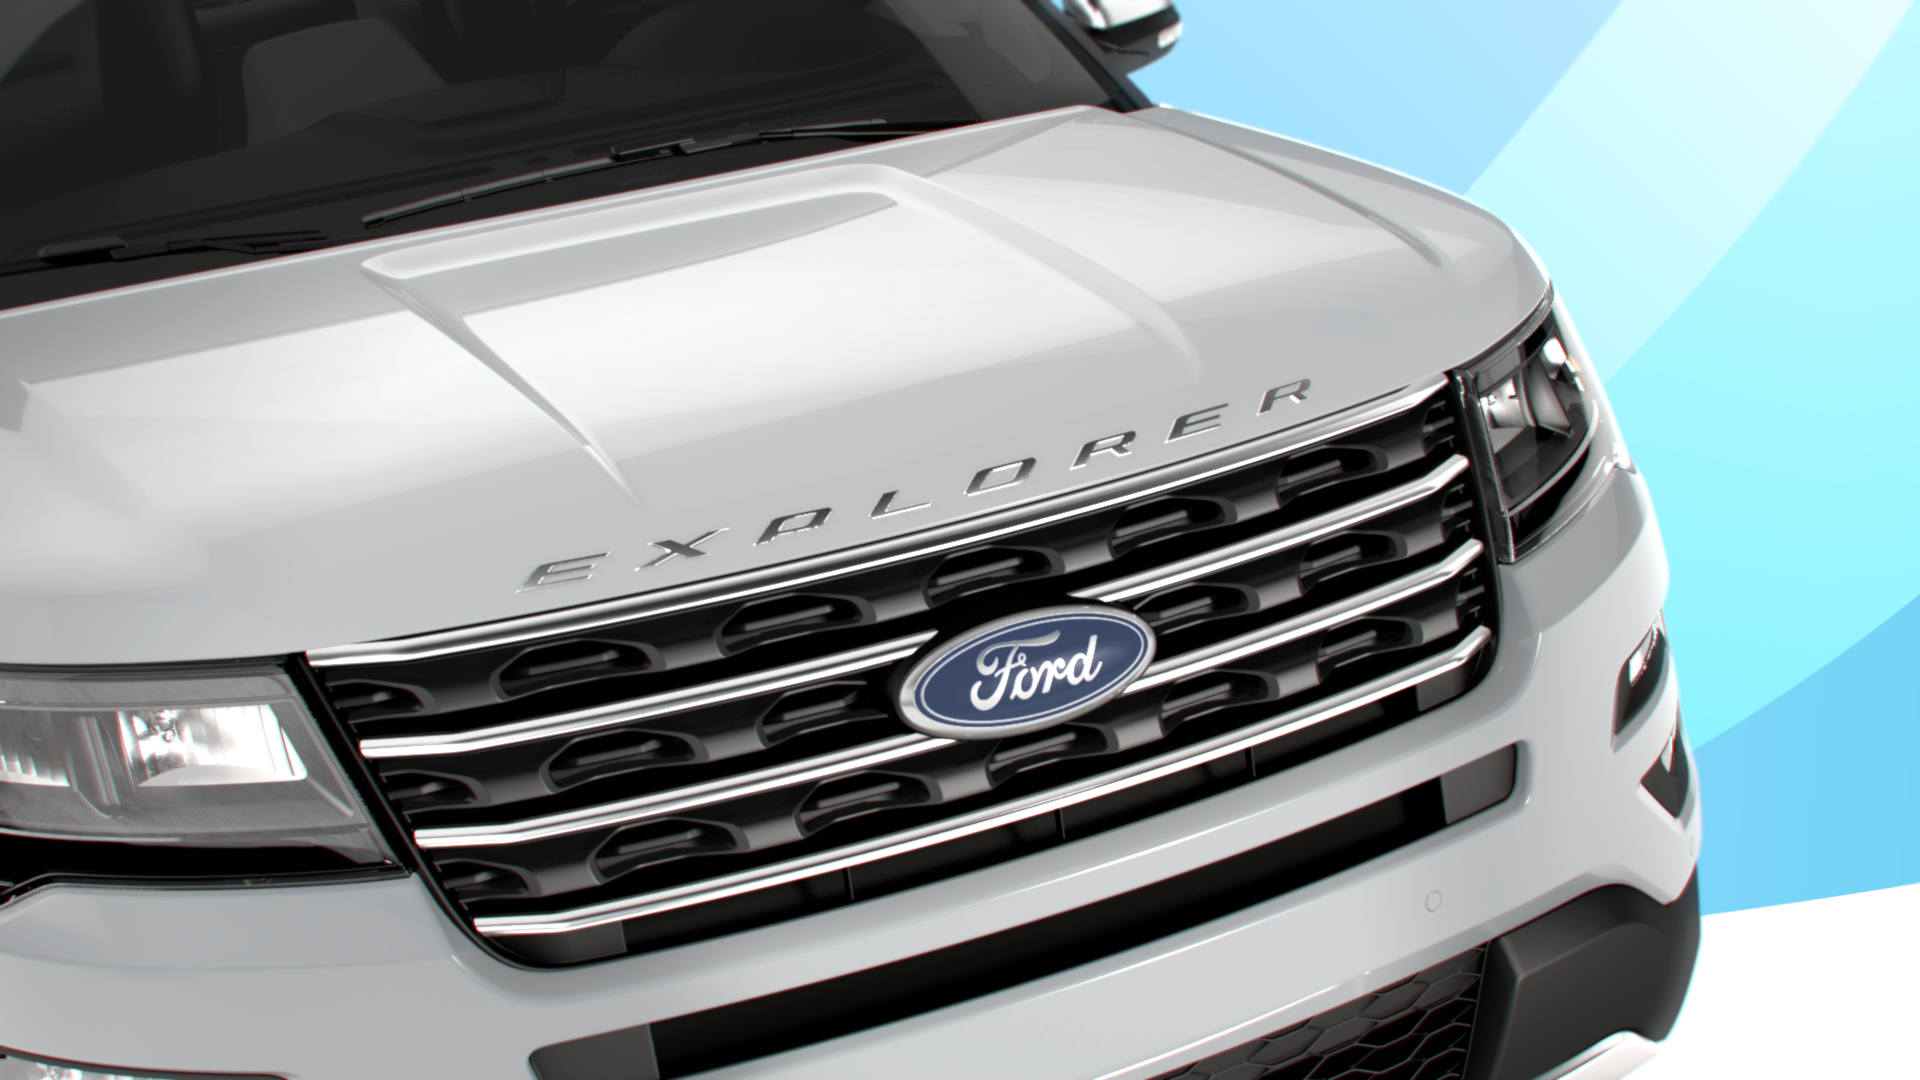 SUV_GM_011516_FINAL (0-00-06-18).png